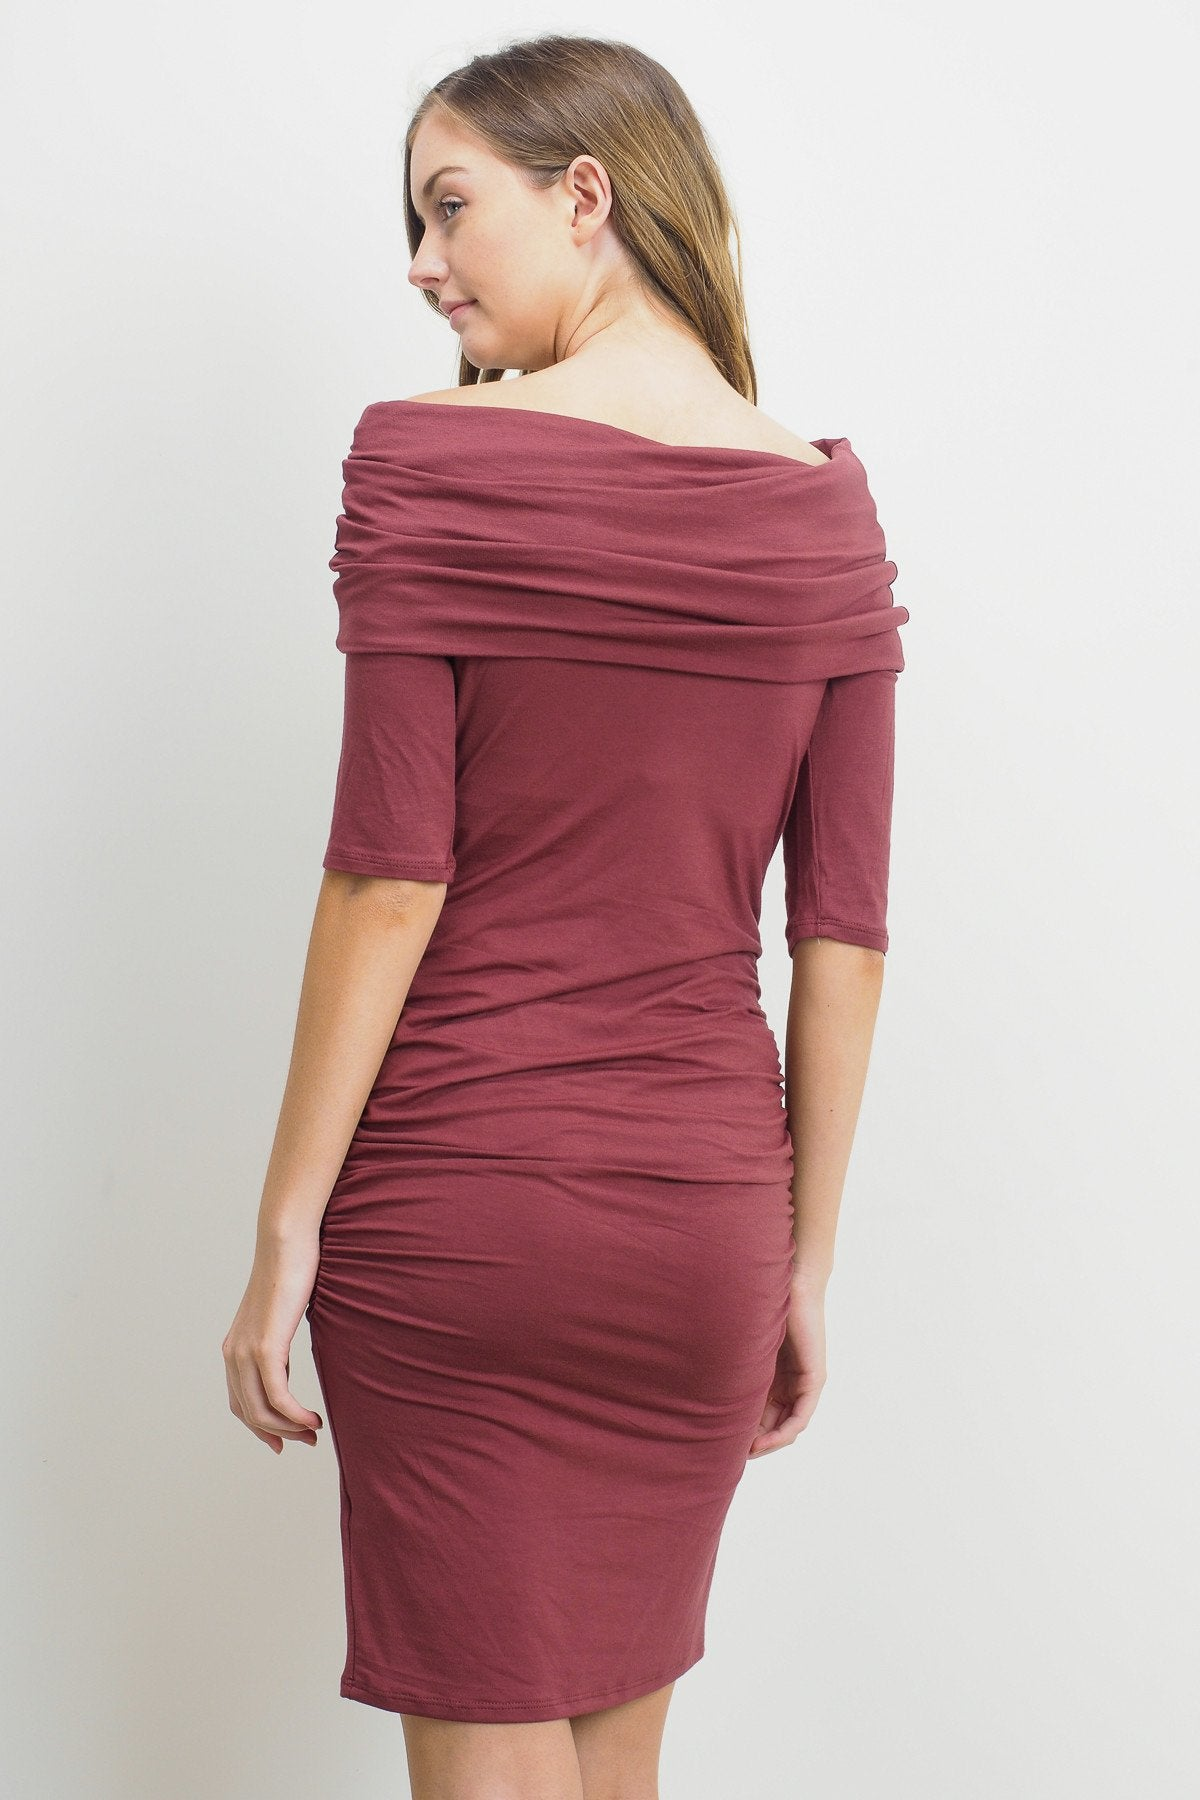 Folded Off Shoulder Solid Maternity Dress